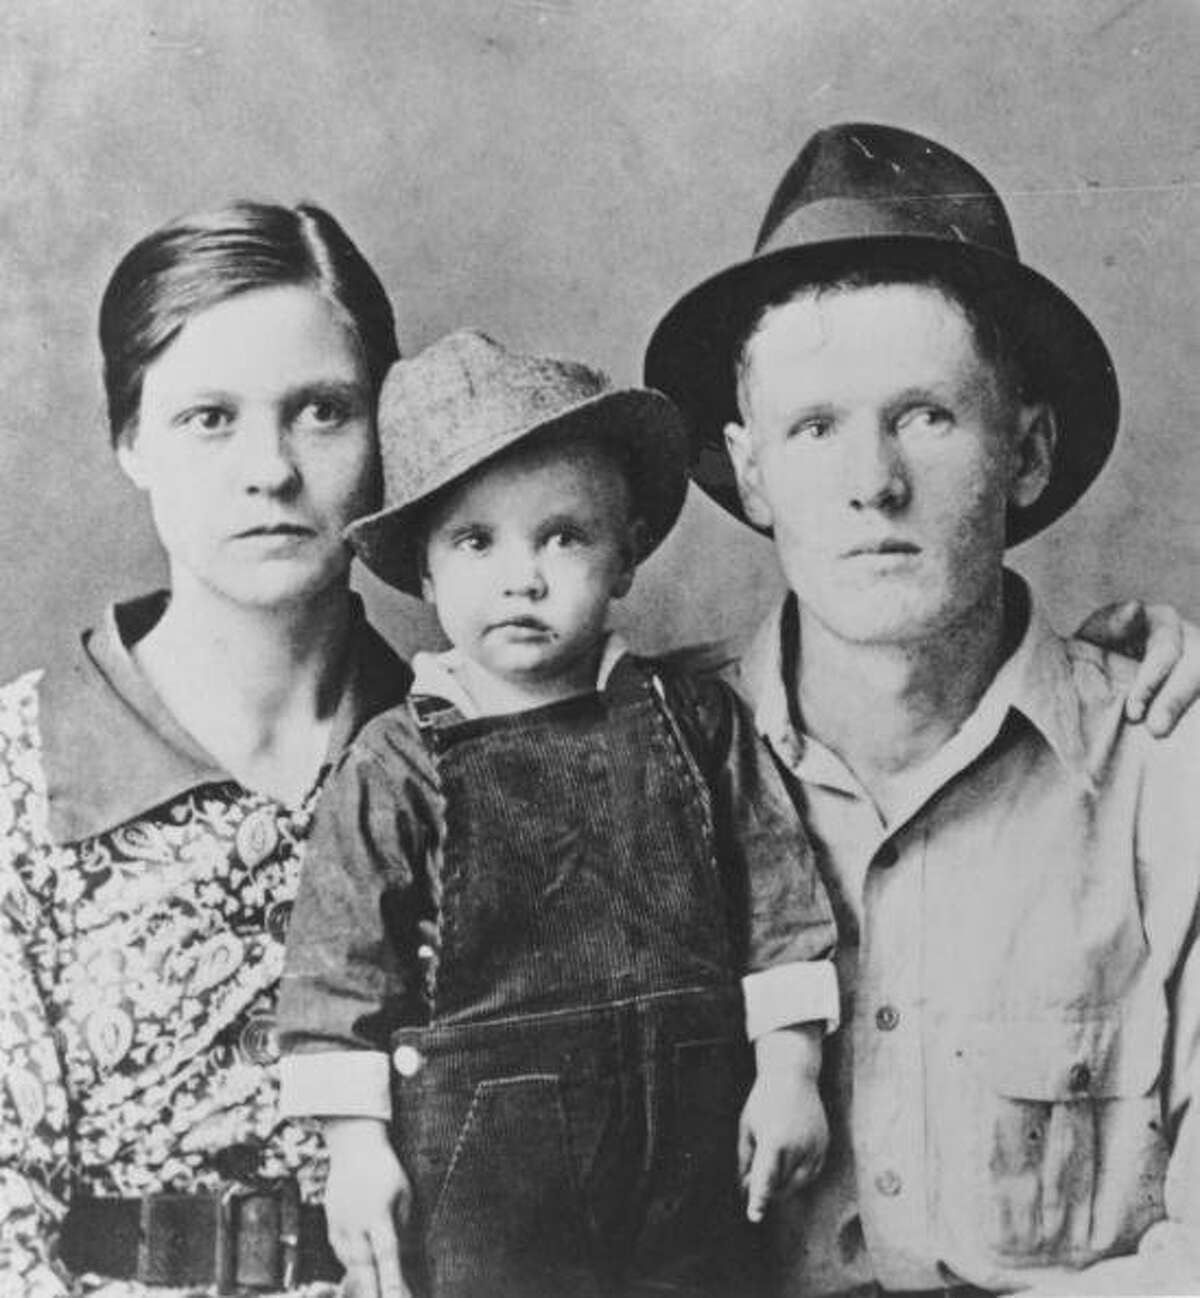 Rock and roll singer Elvis Presley poses for a family portrait with his parents Vernon Presley and Gladys Presley in 1937 in Tupelo, Mississippi. (Photo by Michael Ochs Archives/Getty Images)